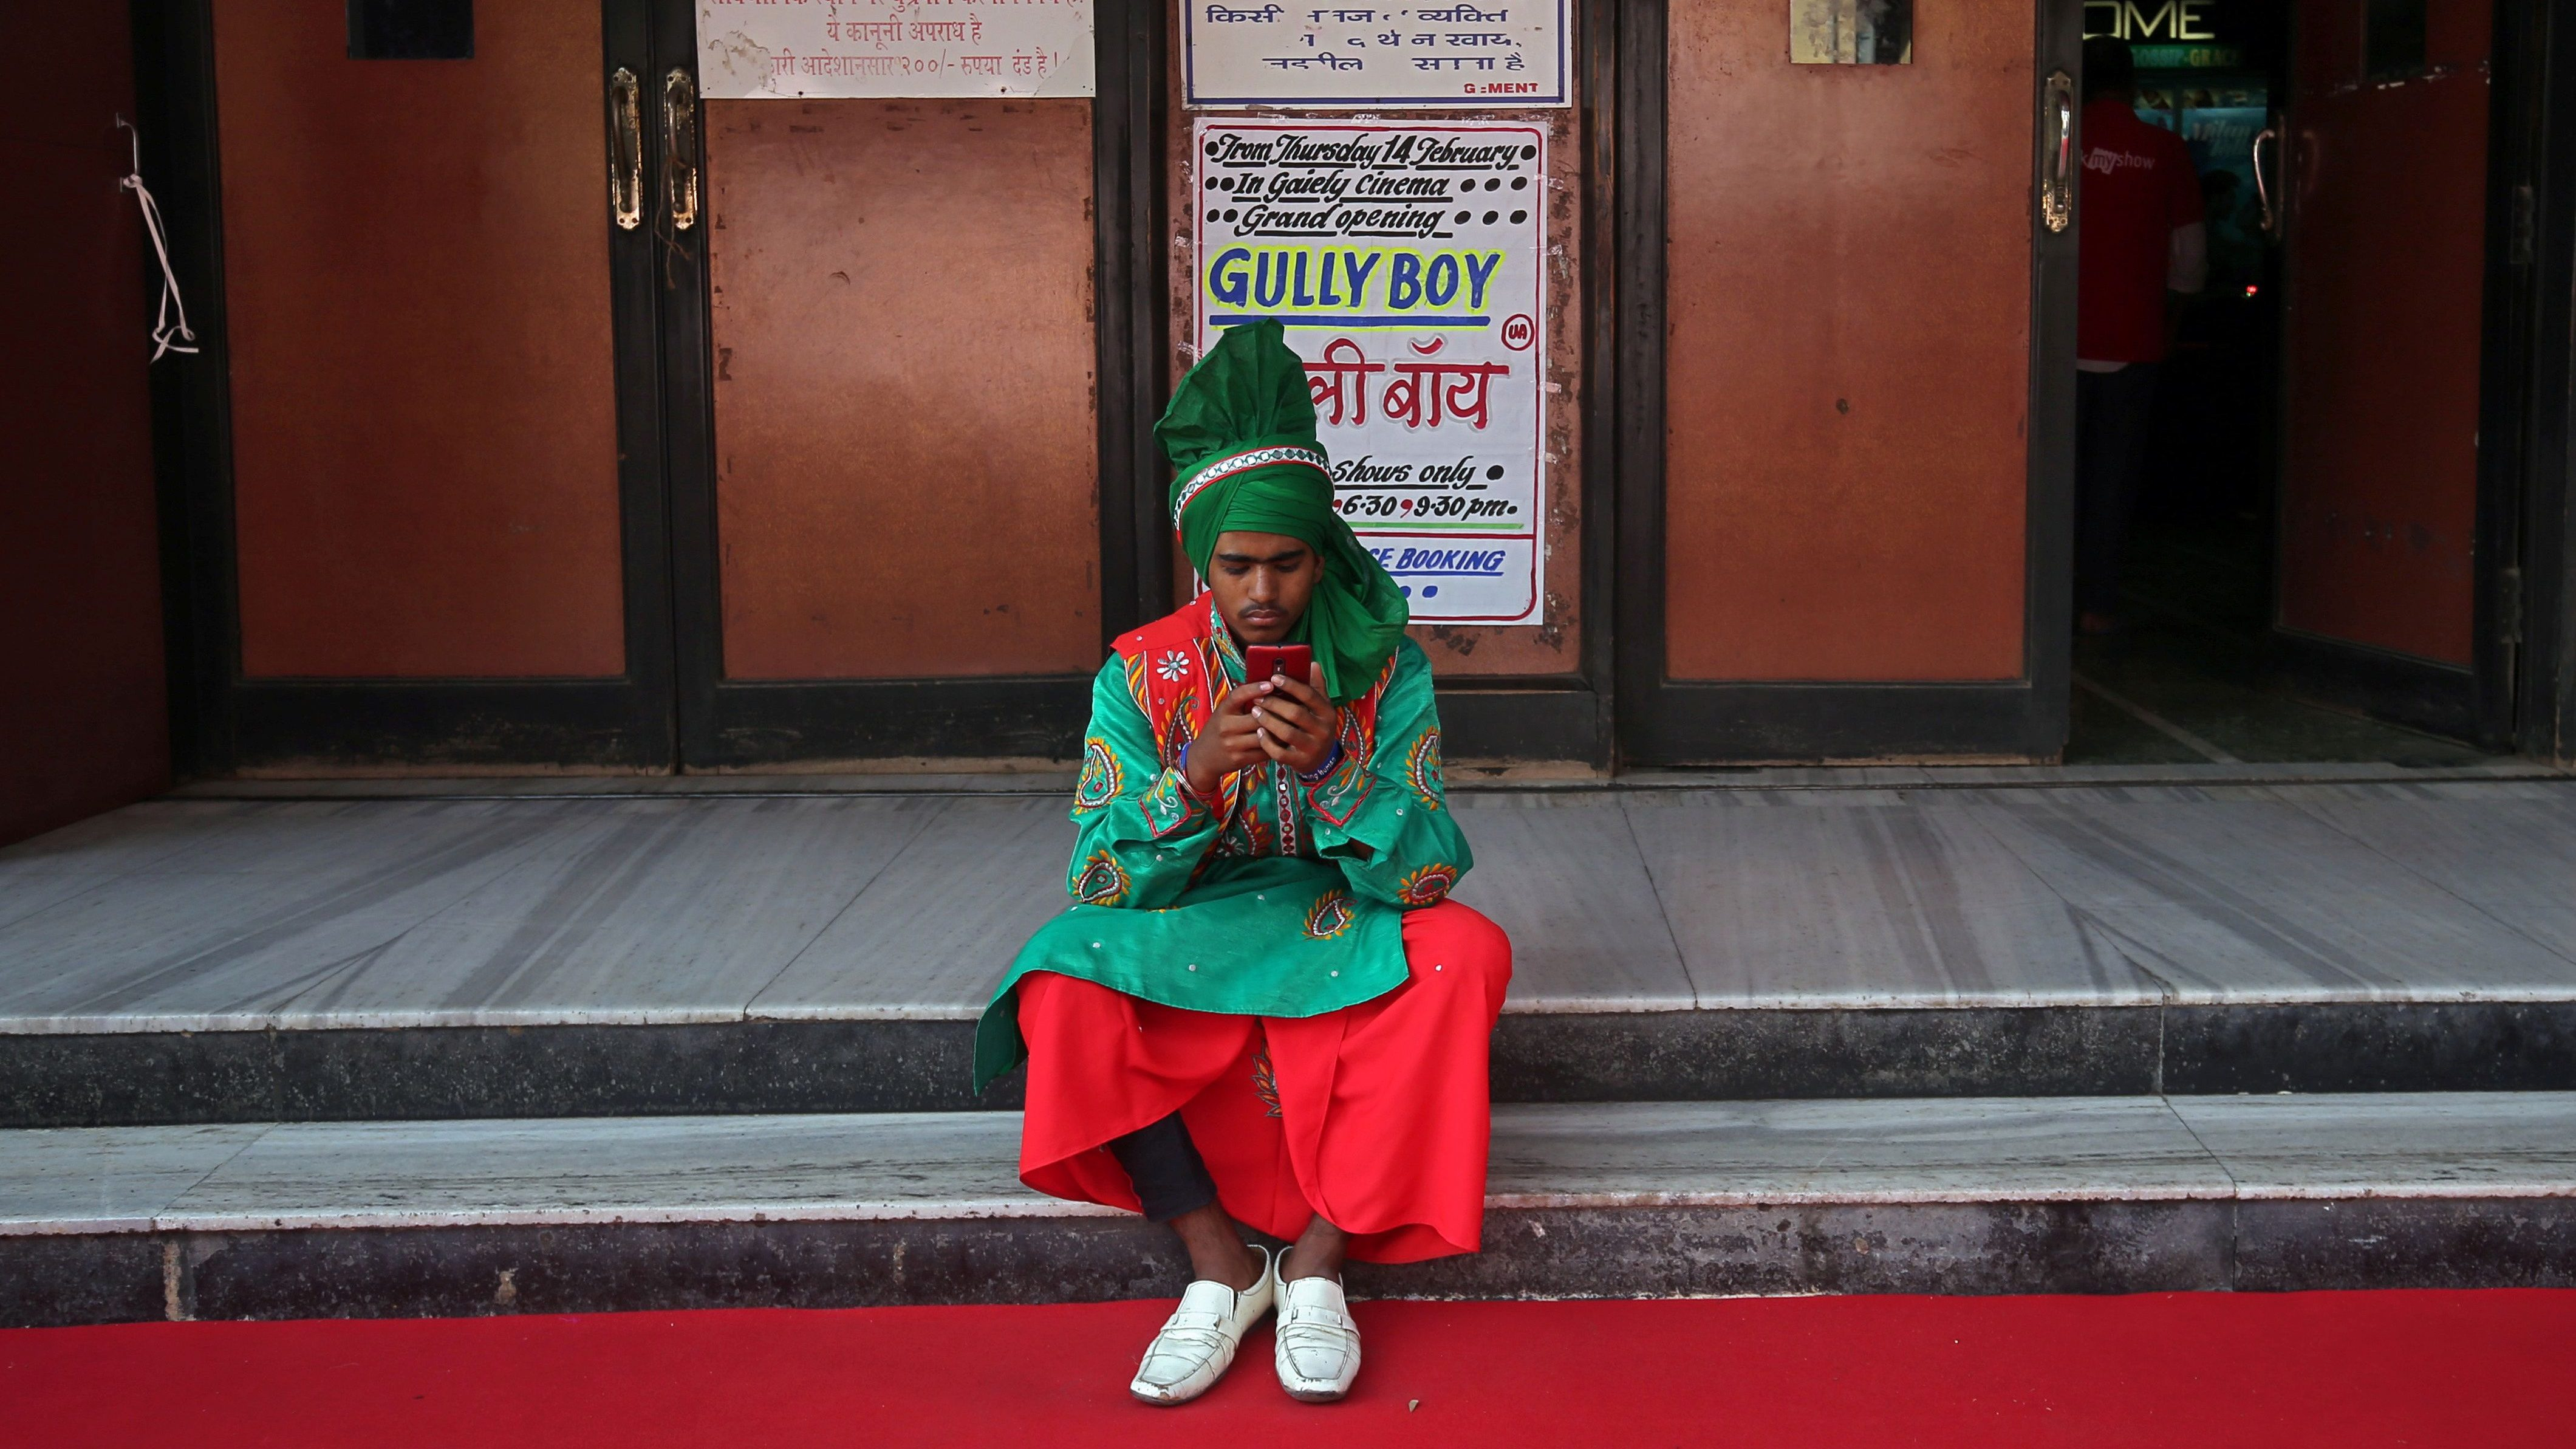 A man wearing traditional attire checks his mobile phone as he waits to perform before the launch of the trailer of a Bollywood movie outside a cinema in Mumbai